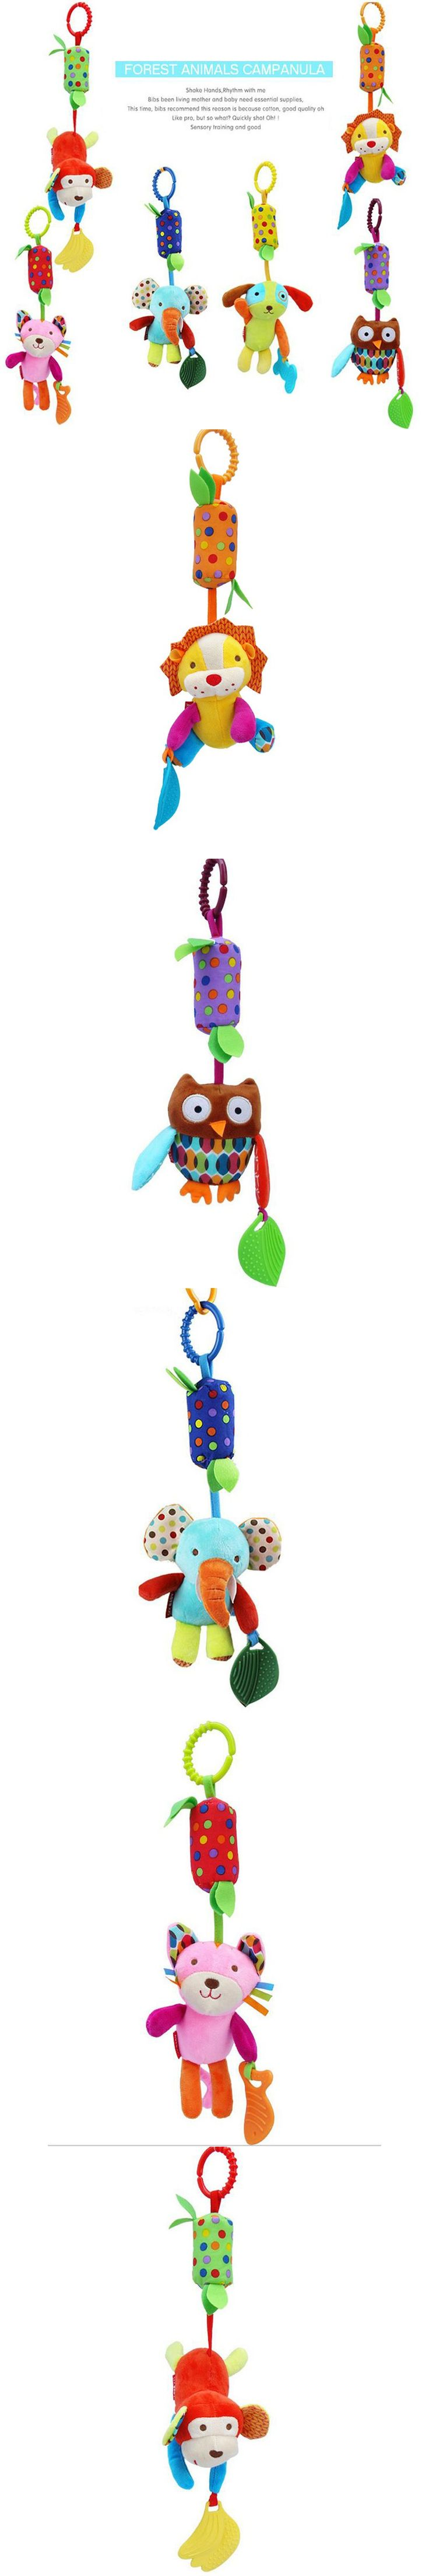 Christmas Gift Hot Sale New Infant Toys Mobile Baby Plush Toy Bed Wind Chimes Rattles Bell Toy Stroller for Newborn baby toys $4.89